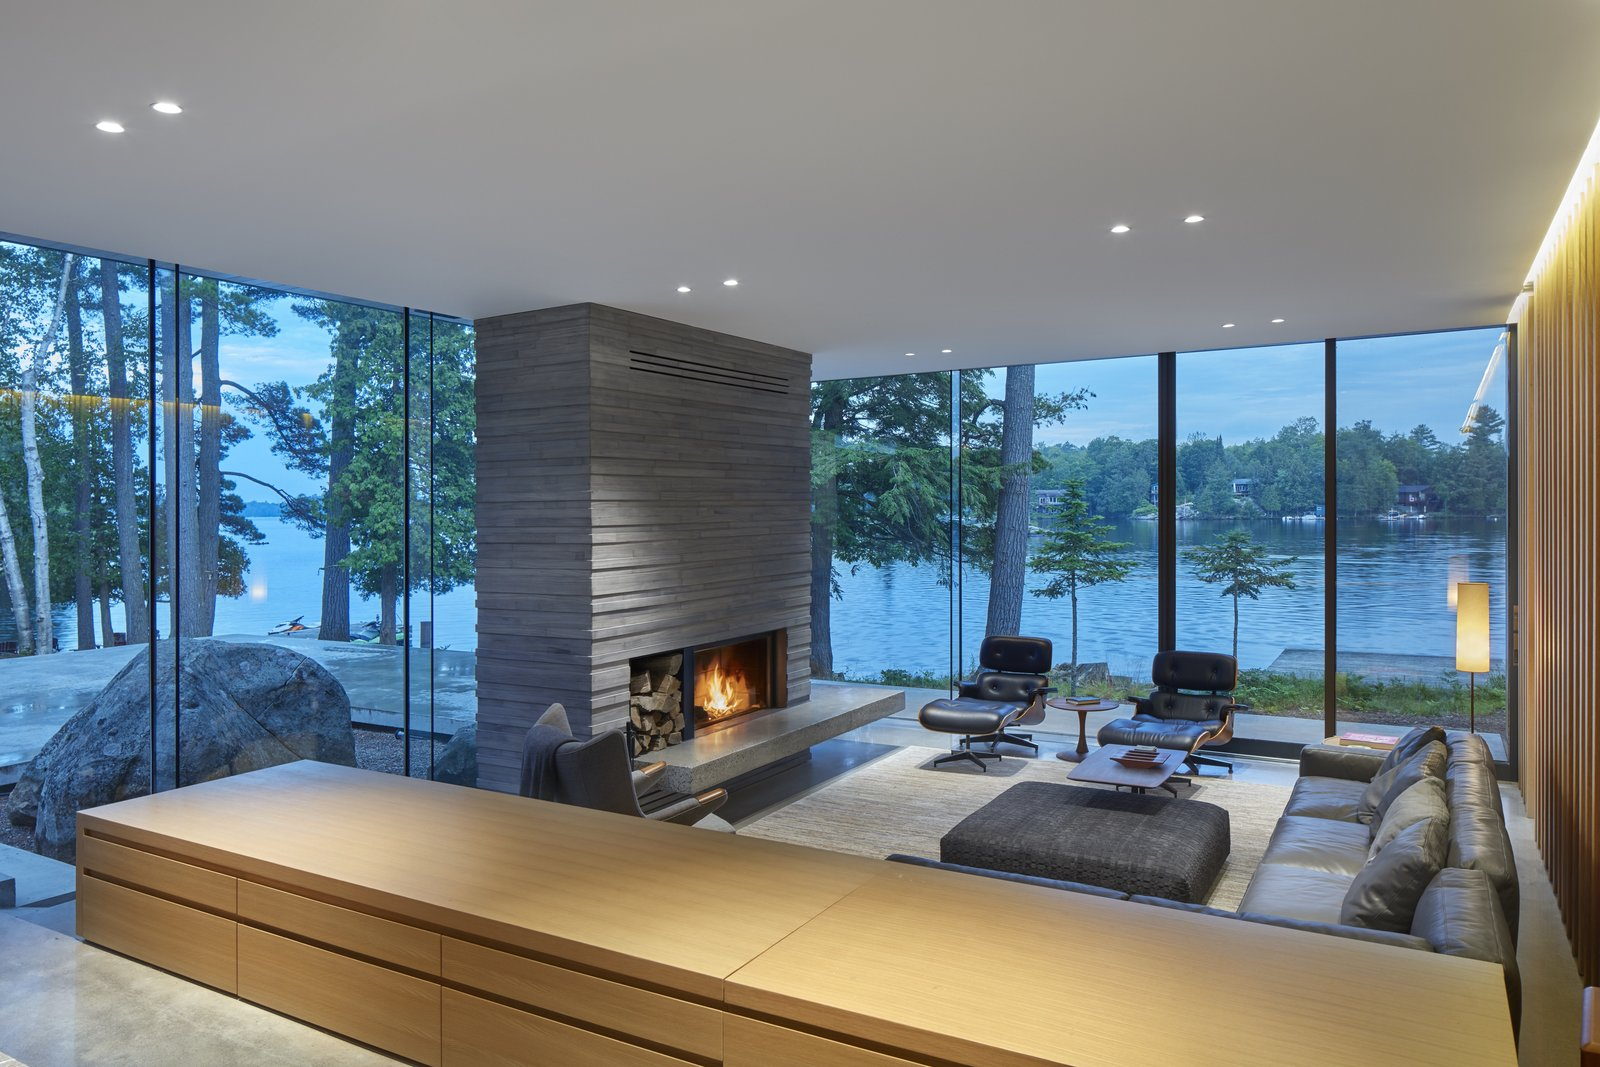 Lake Manitouwabing Residence living room with fireplace